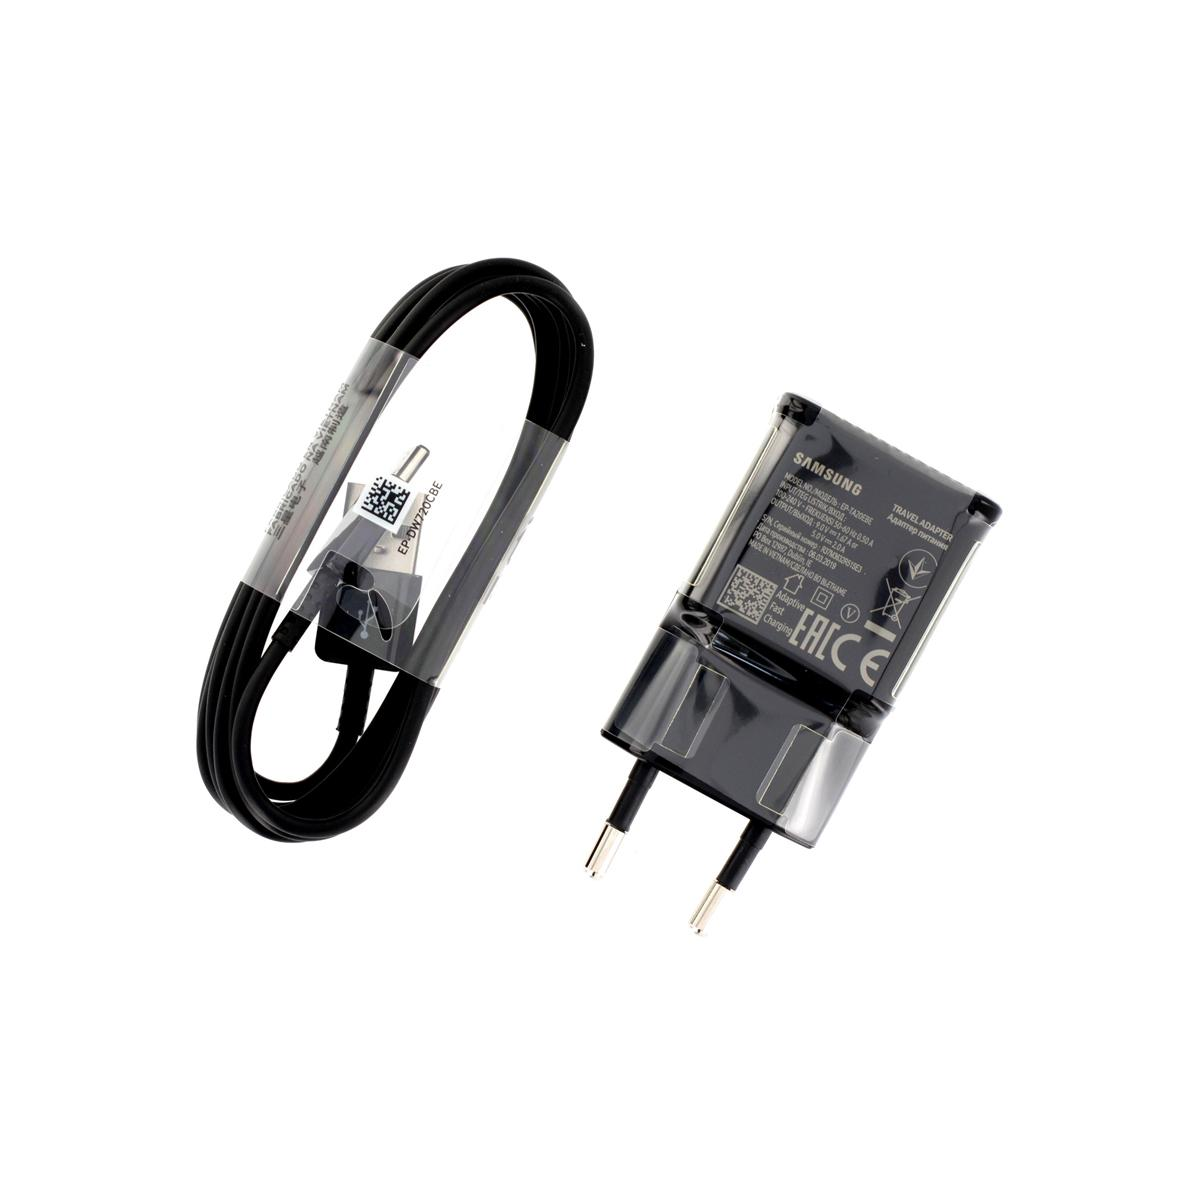 Samsung Fast Charger with USB Cable Type-C - Black